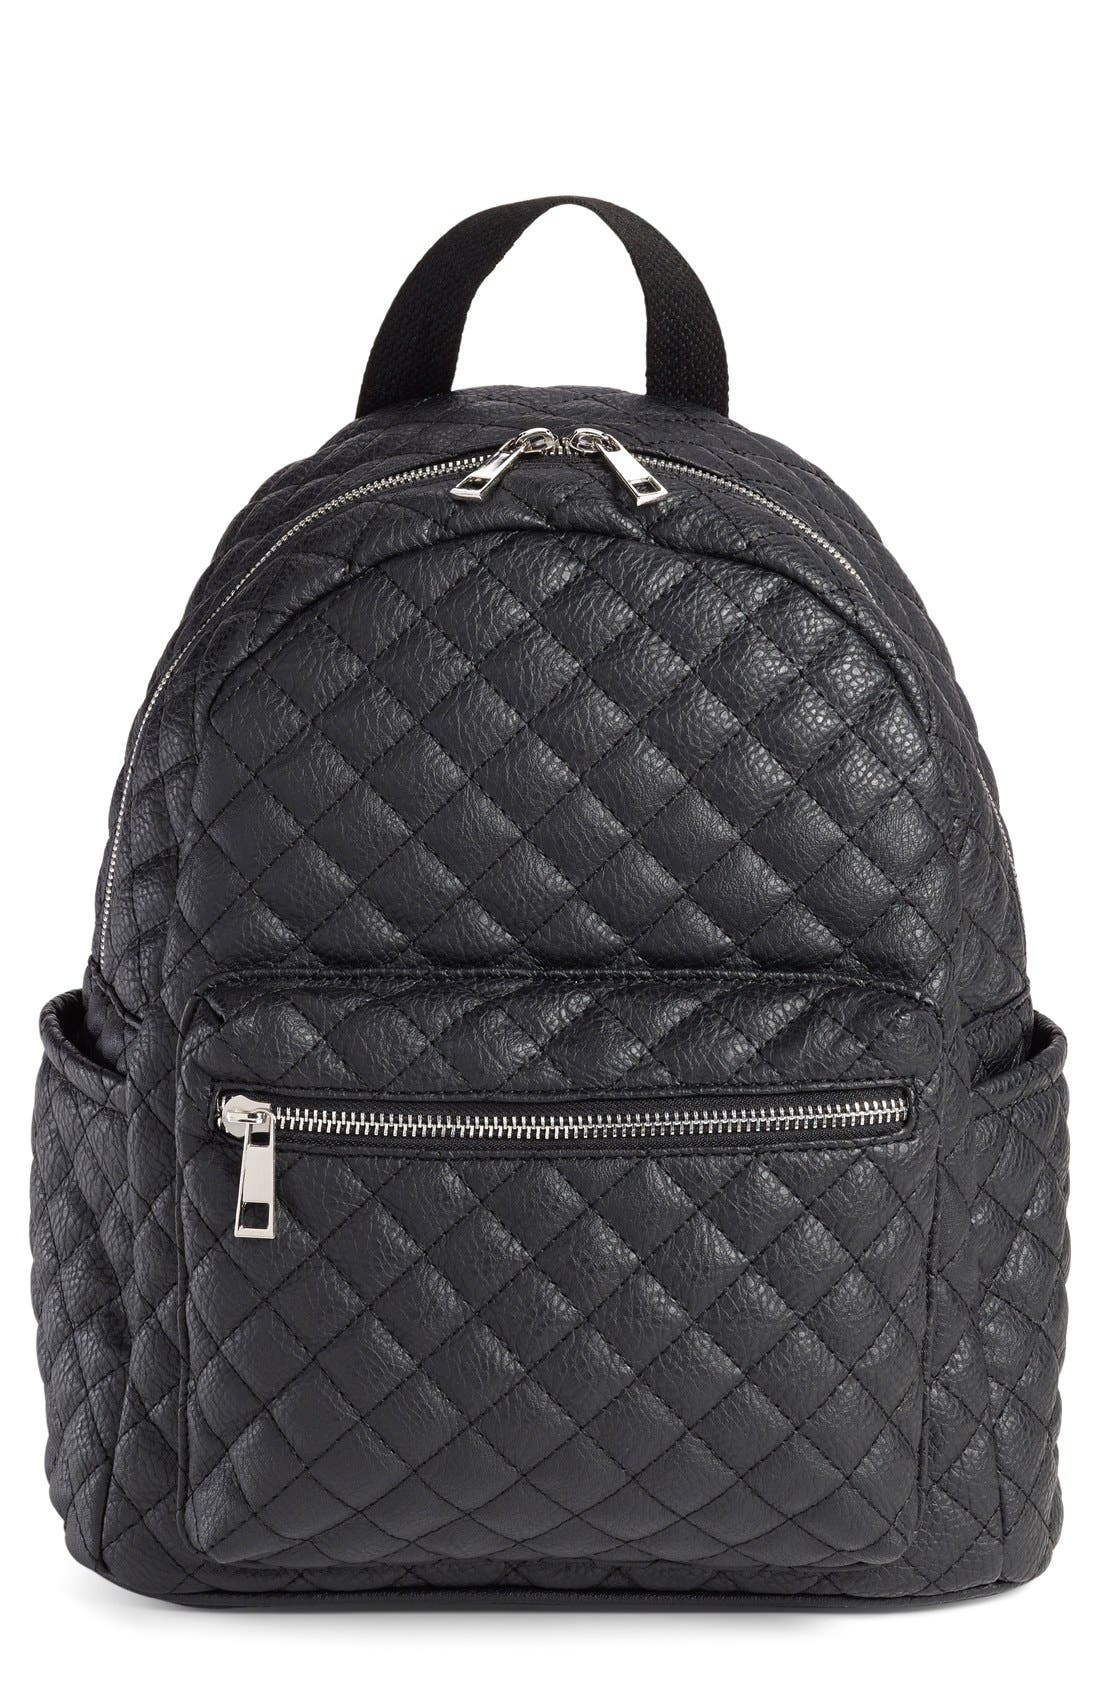 Faux Leather Quilted Backpack,                         Main,                         color,